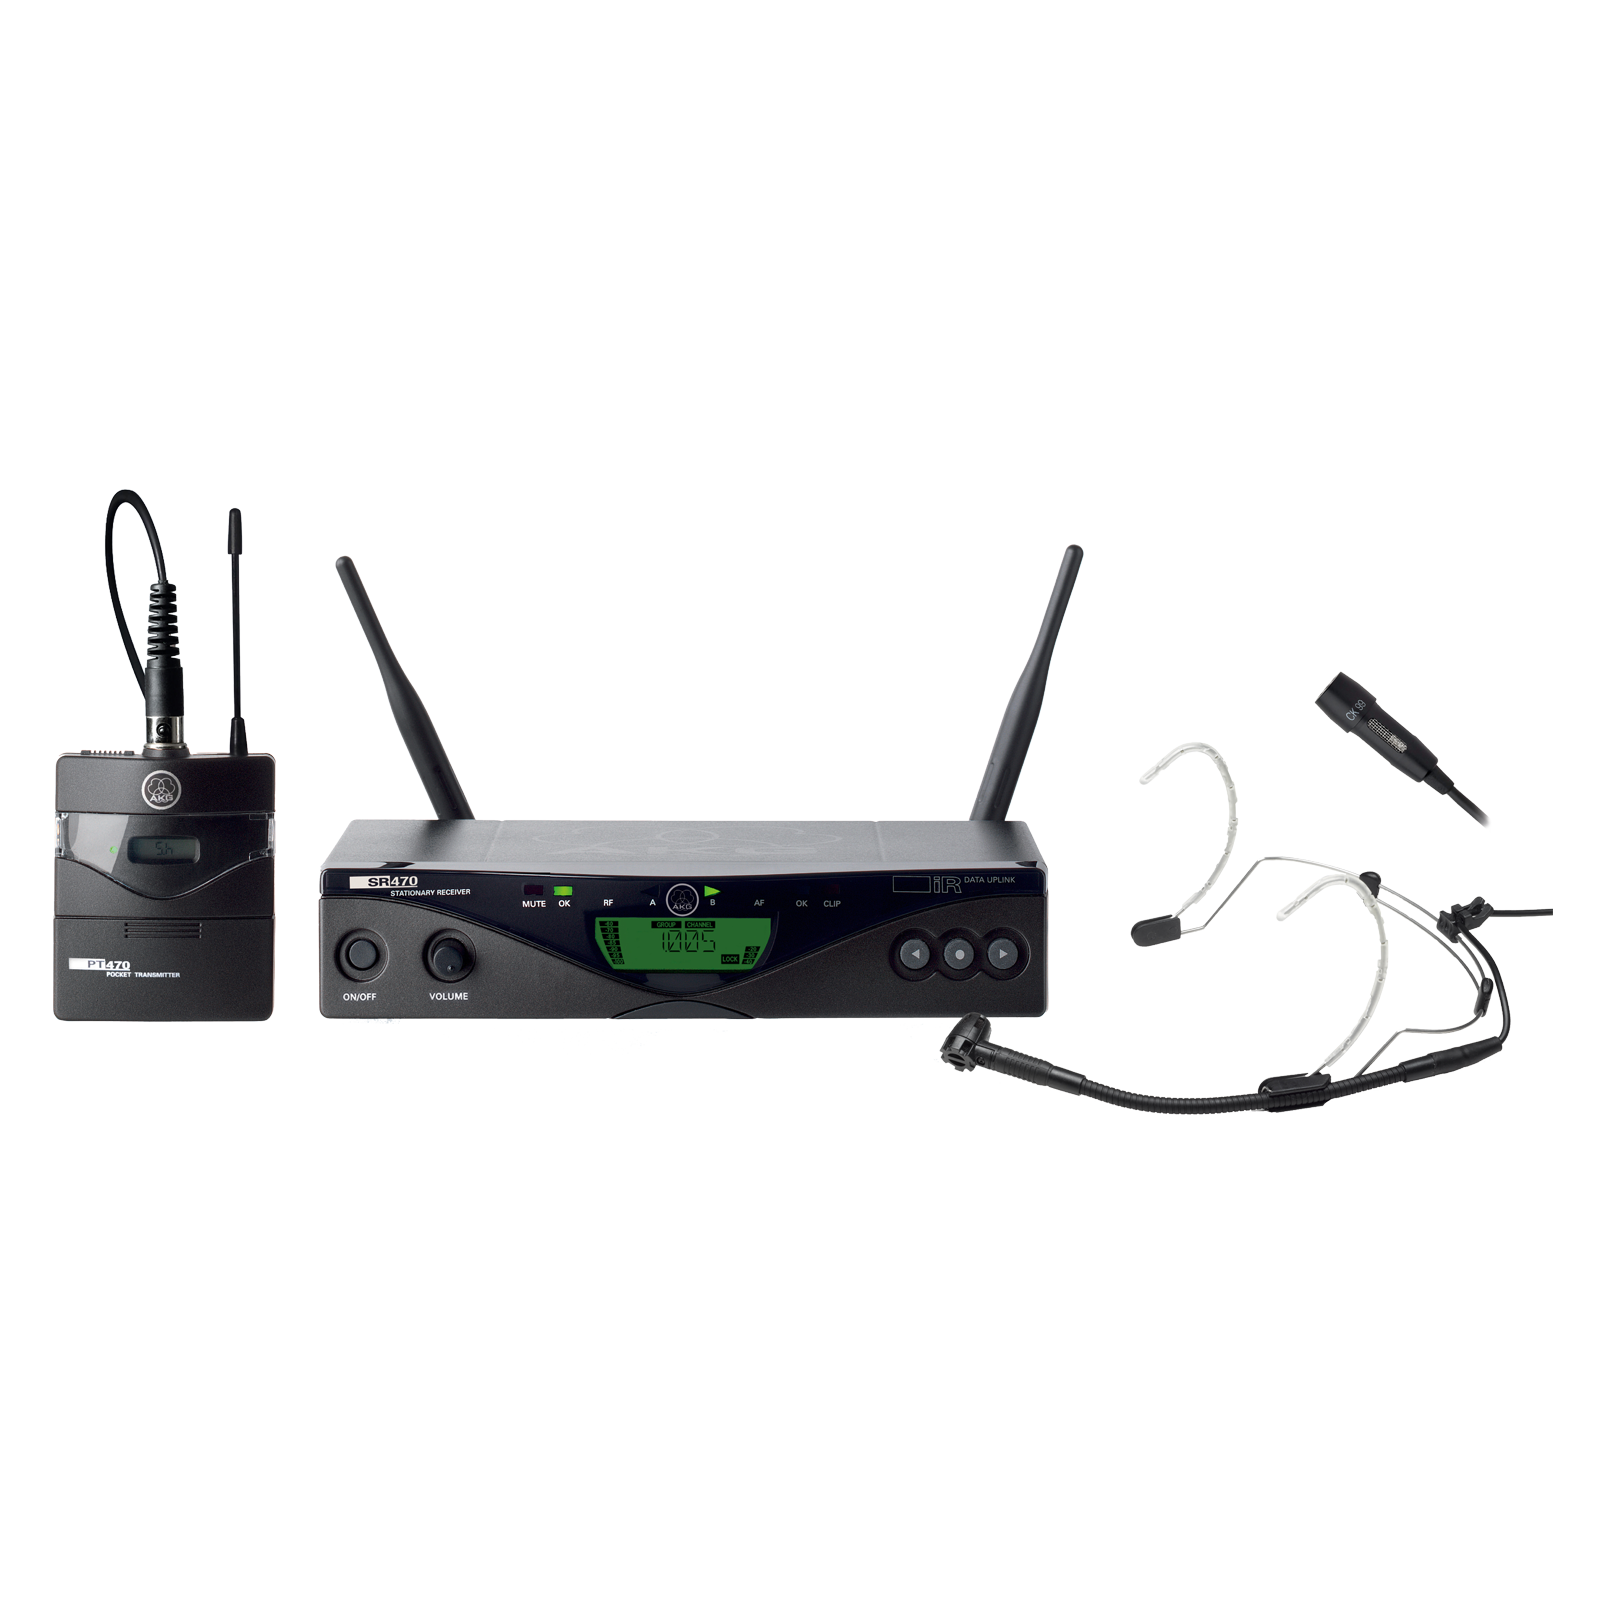 WMS470 Presenter Set Band3-K 10mW none - Black - Professional wireless microphone system - Hero